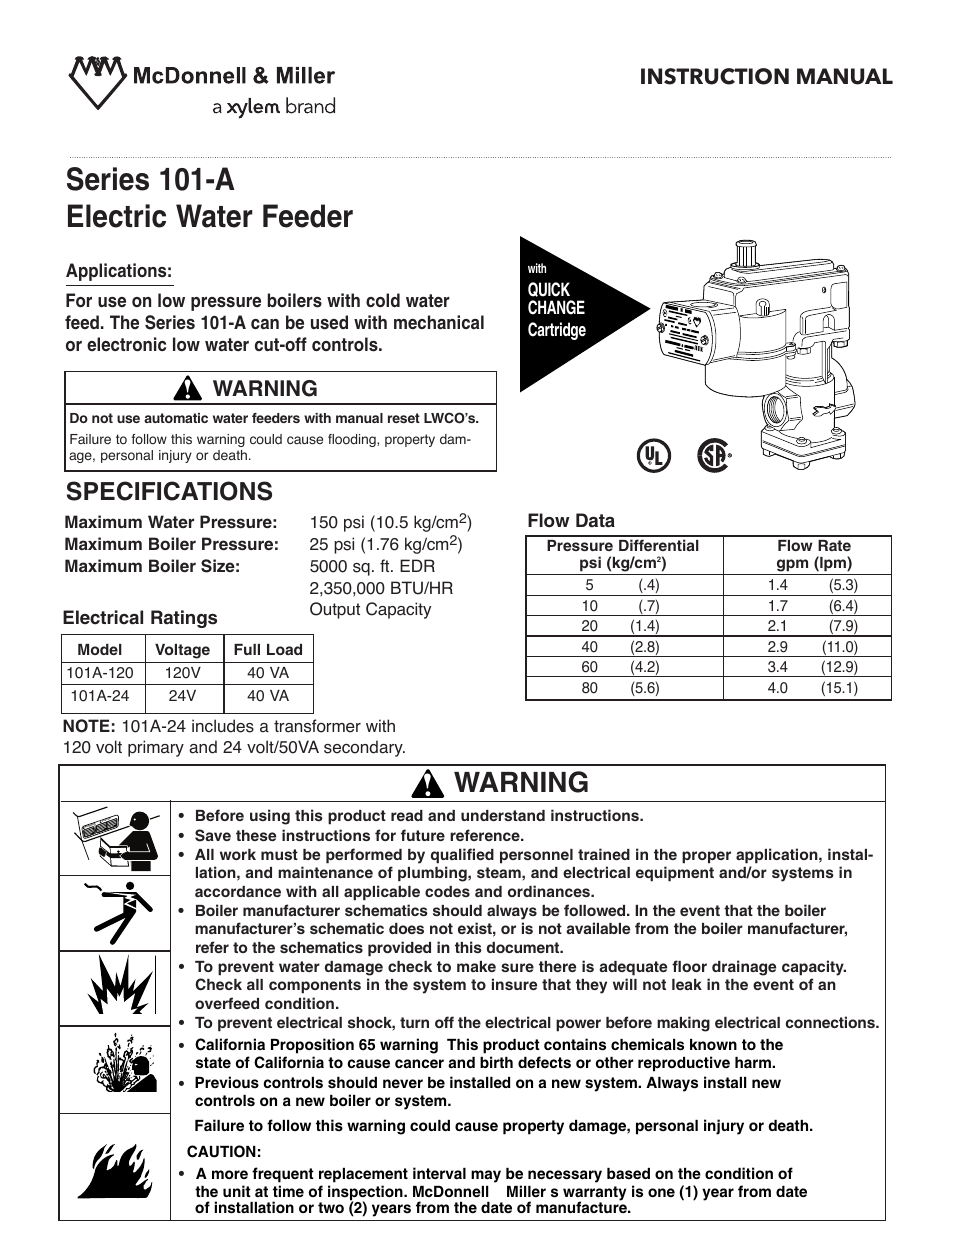 Xylem MM 307H Series 101-A Electric Water Feeder User Manual